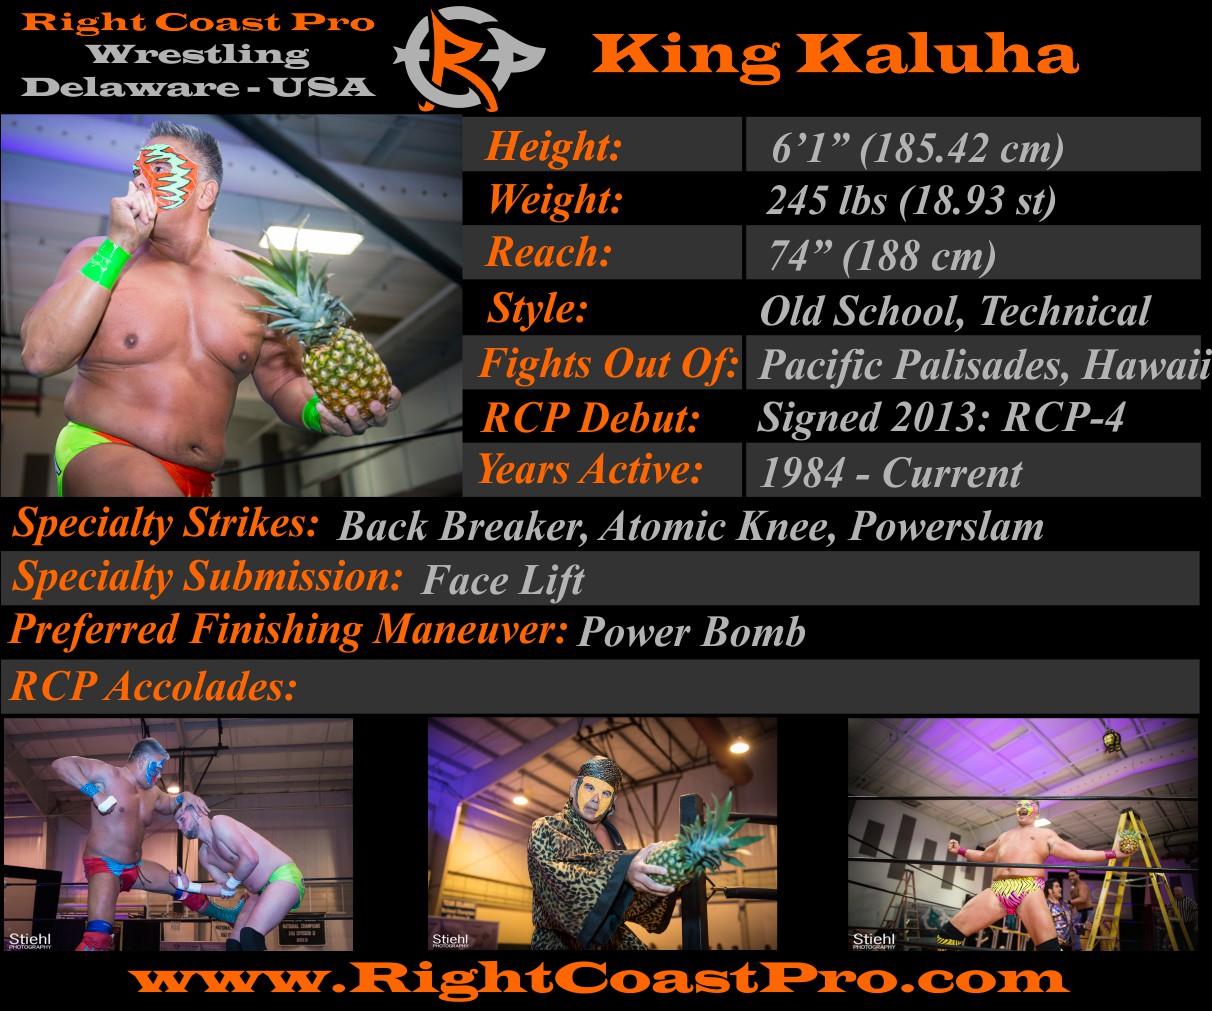 King Kaluha profile RightCoastPro Wrestling Delaware